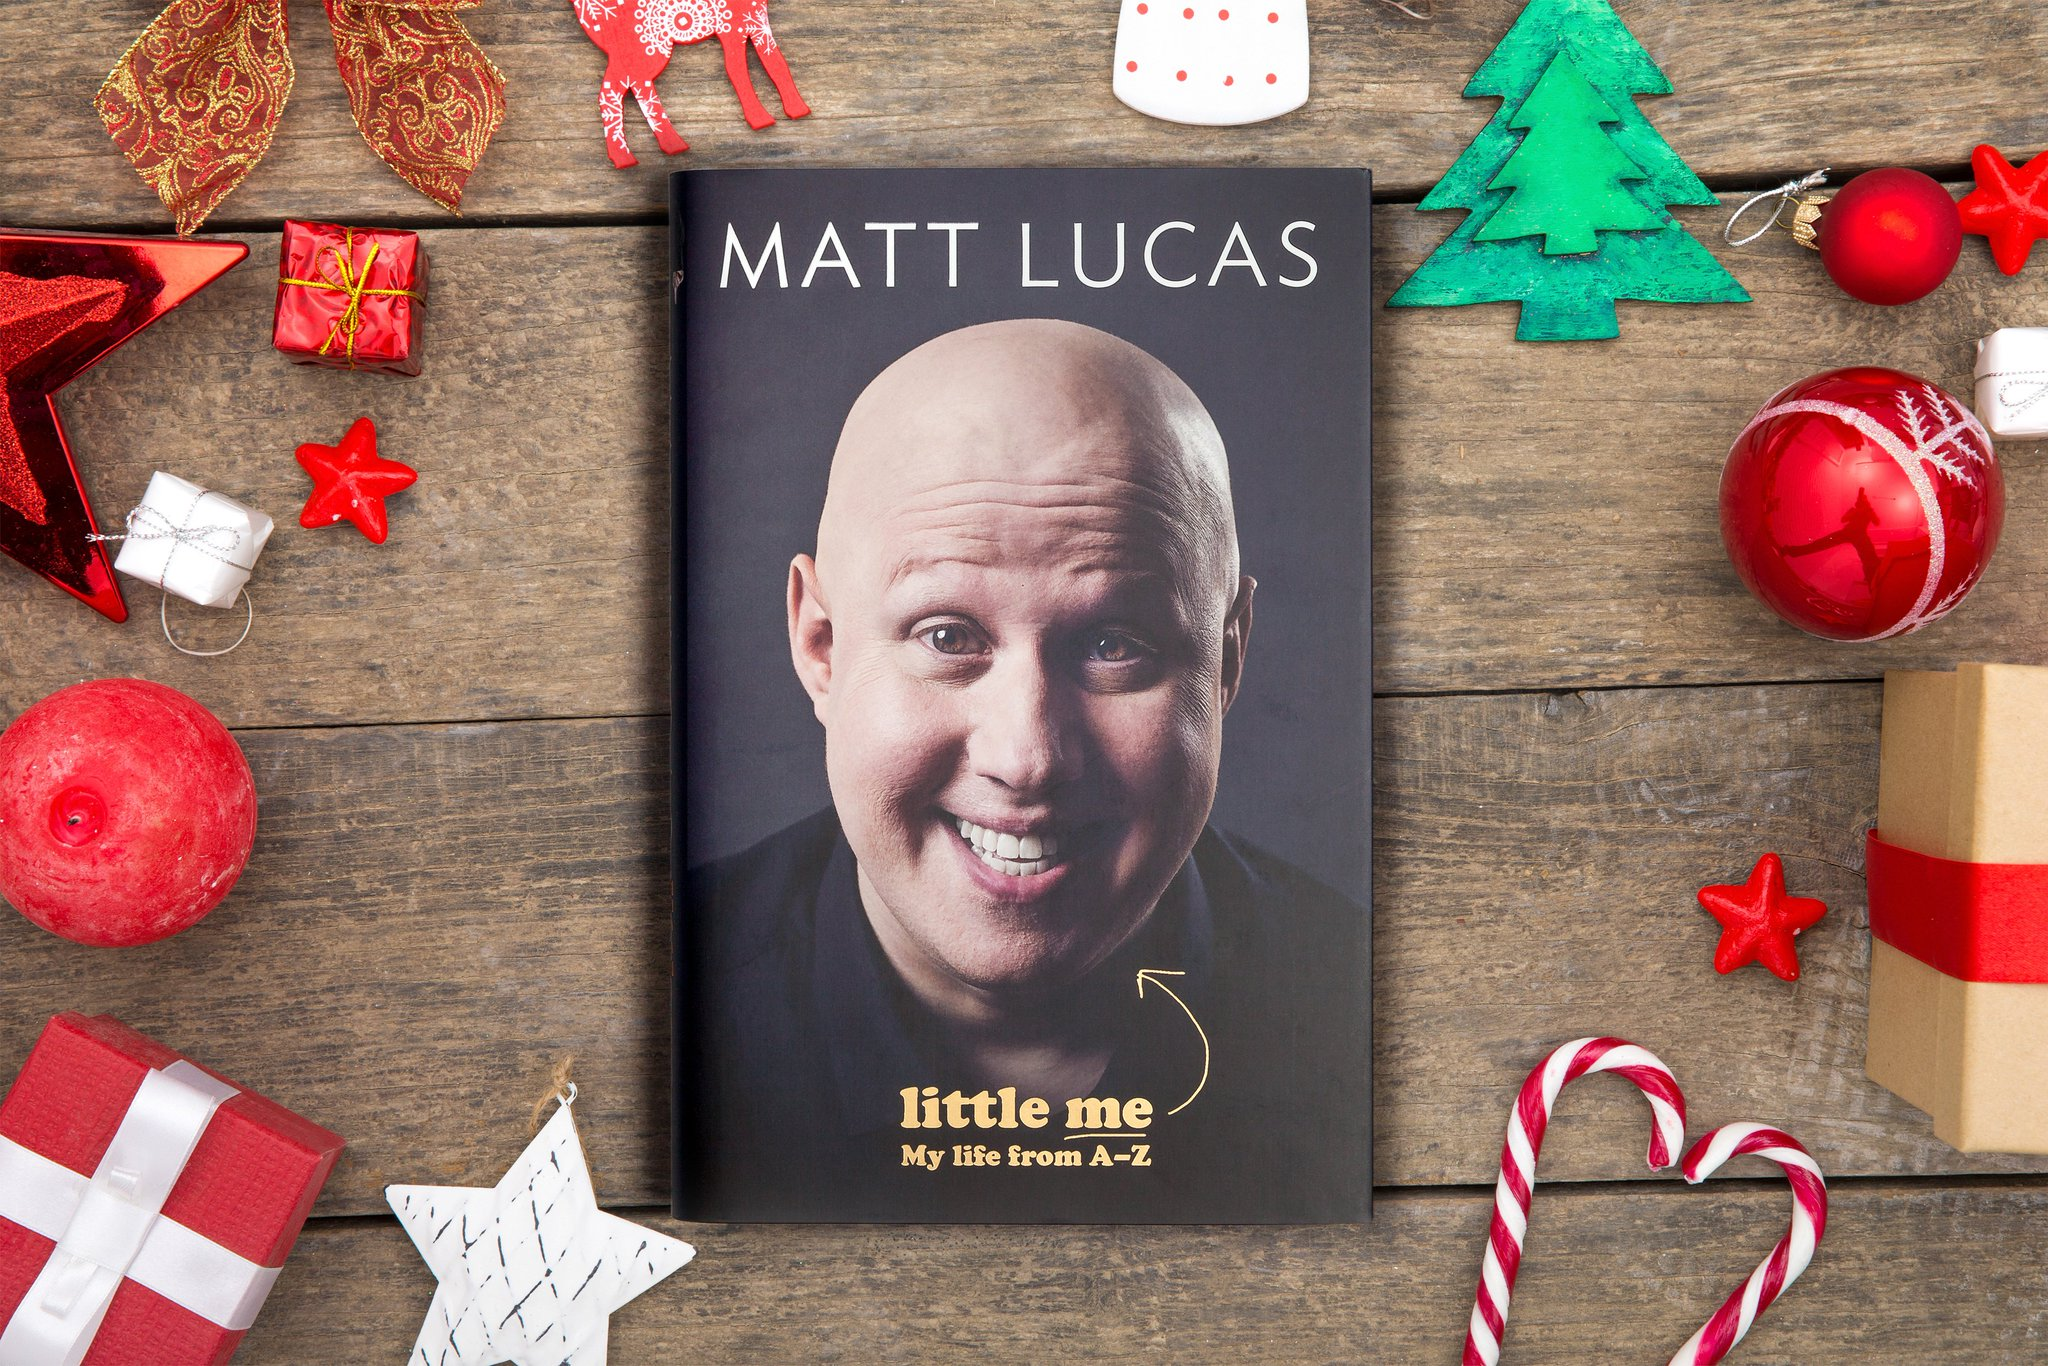 RT @RealMattLucas: The perfect Christmas present is less than a tenner on Amazon!   https://t.co/WtV5ZRJoDJ https://t.co/dfgpt1KInC